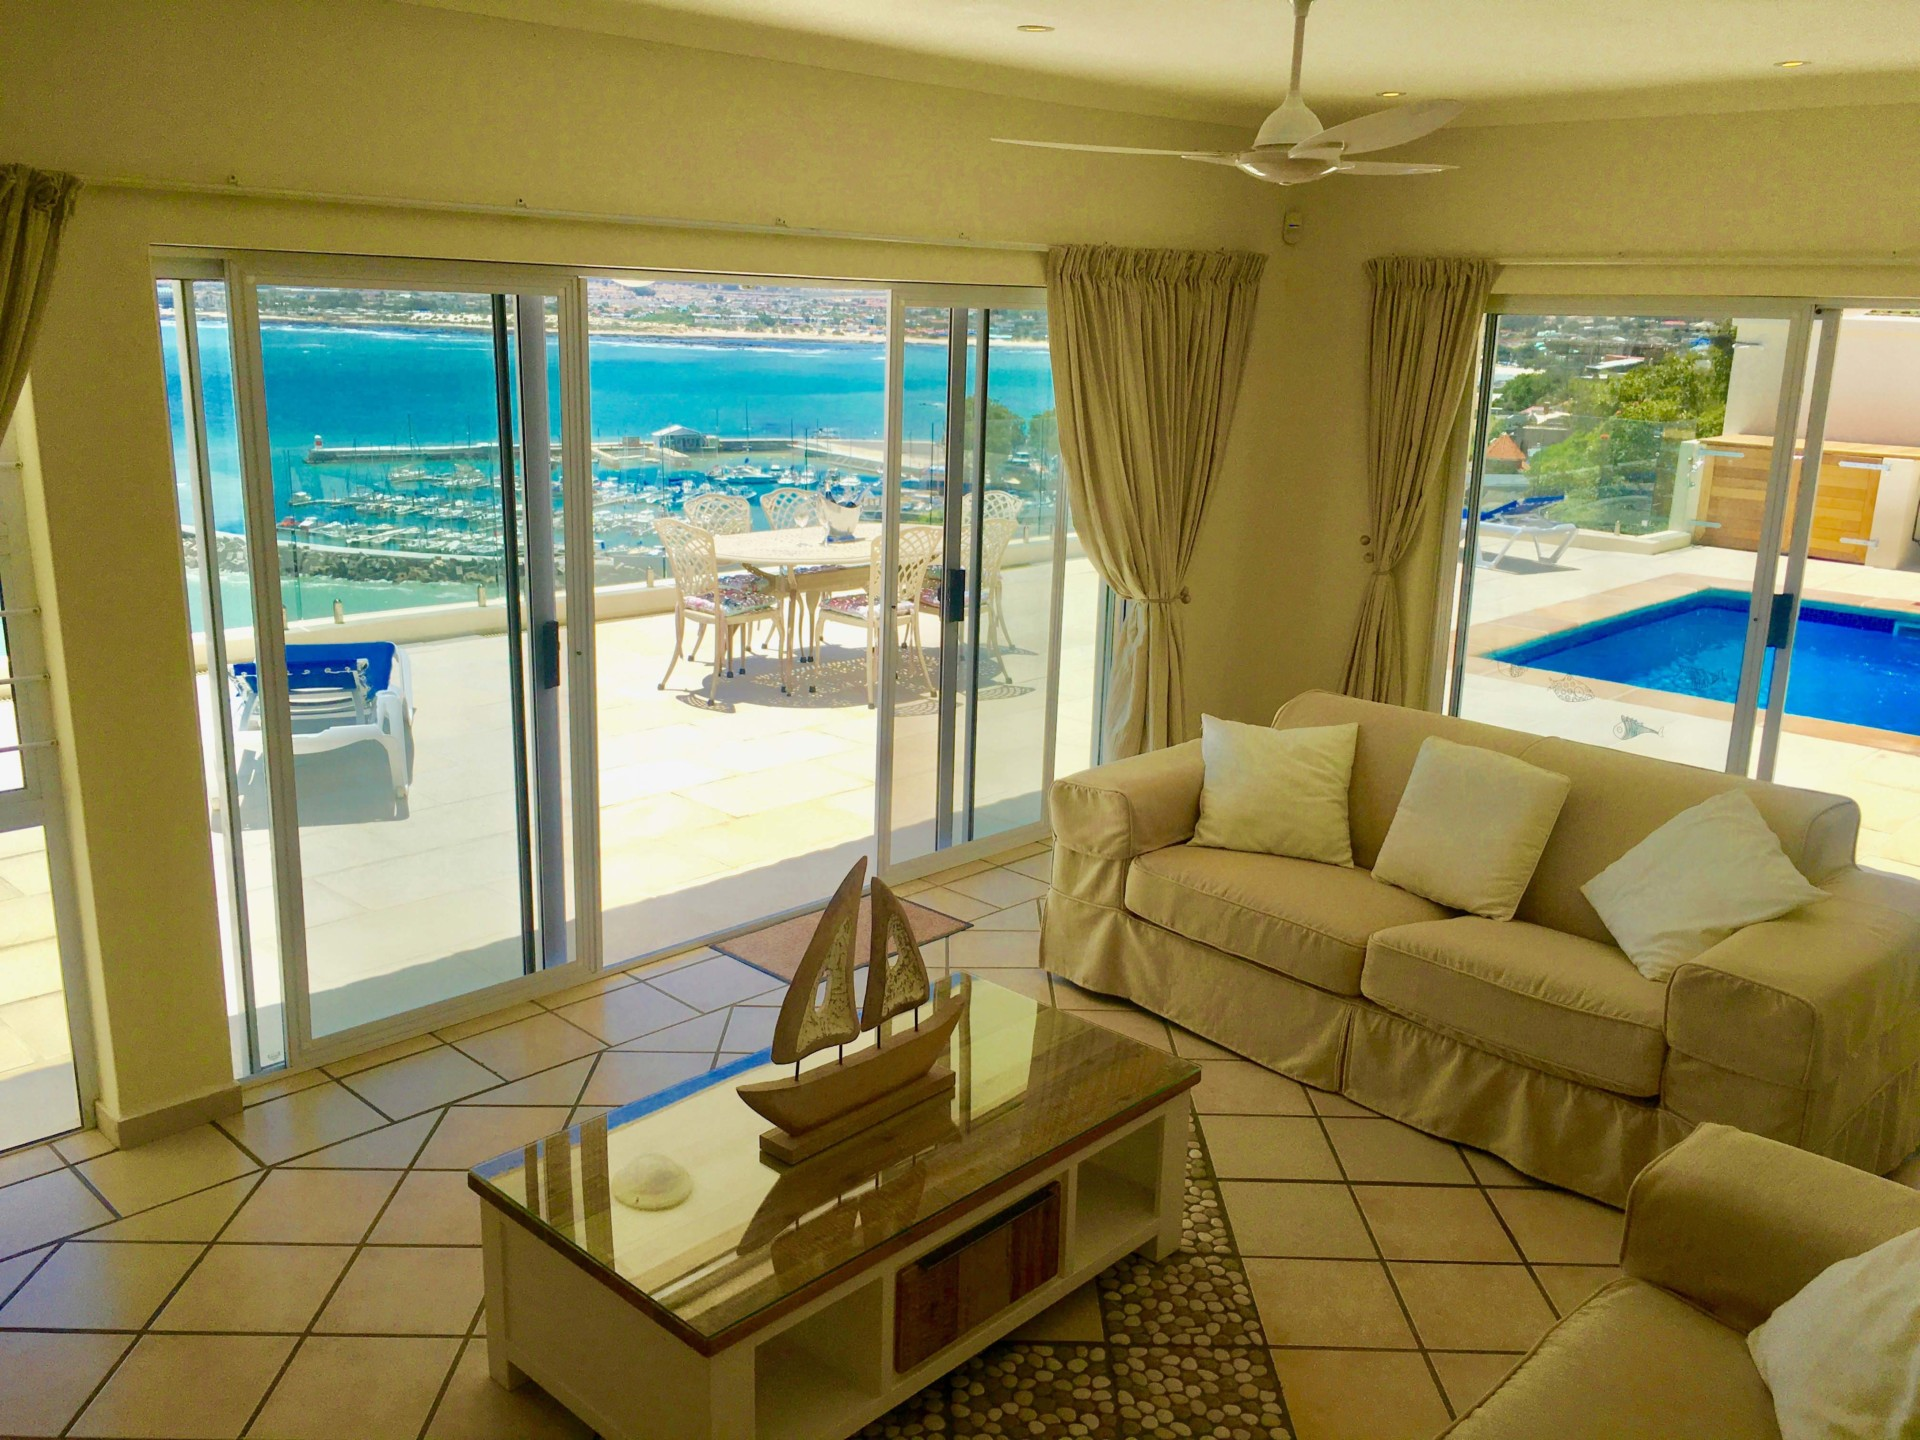 2 bedroom apartment lounge 5 ocean view apartments for Five bedroom apartments